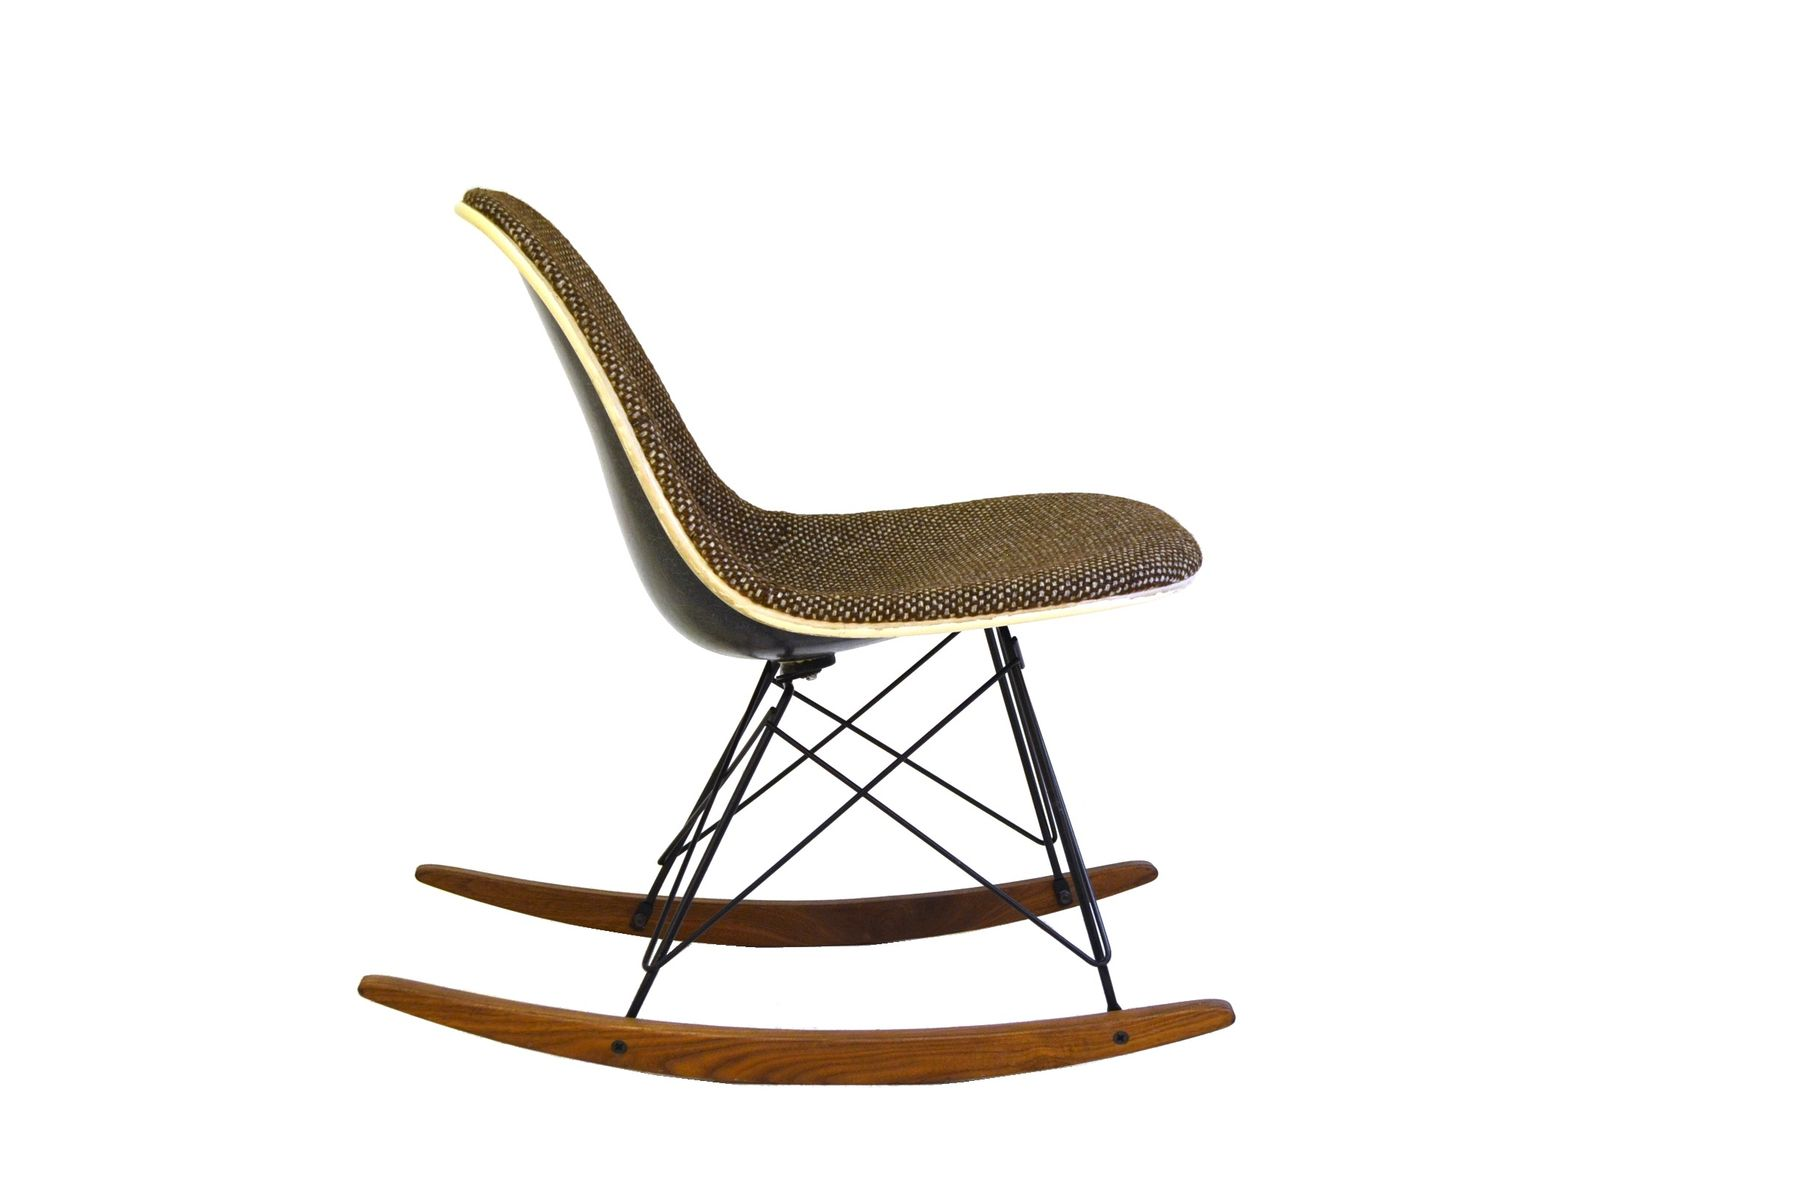 Rocking chair by charles eames for herman miller 1948 for sale at pamono - Rocking chair charles eames ...